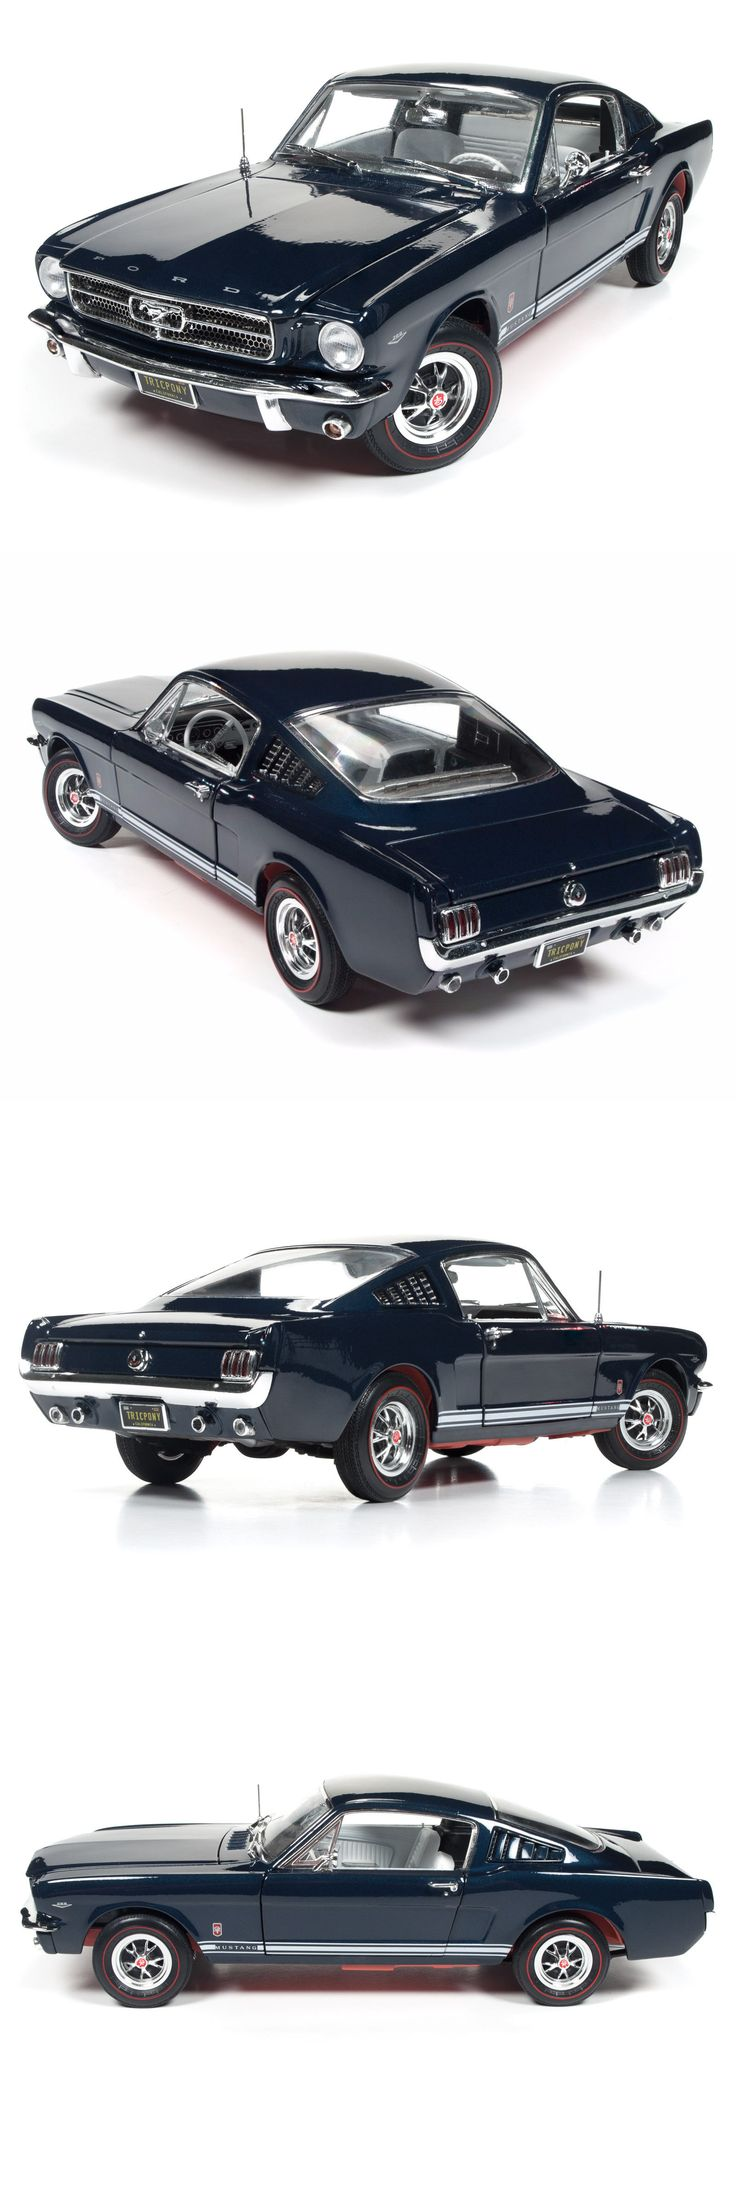 Contemporary manufacture 180506 1965 ford mustang gt blue 1 18 scale diecast car model by